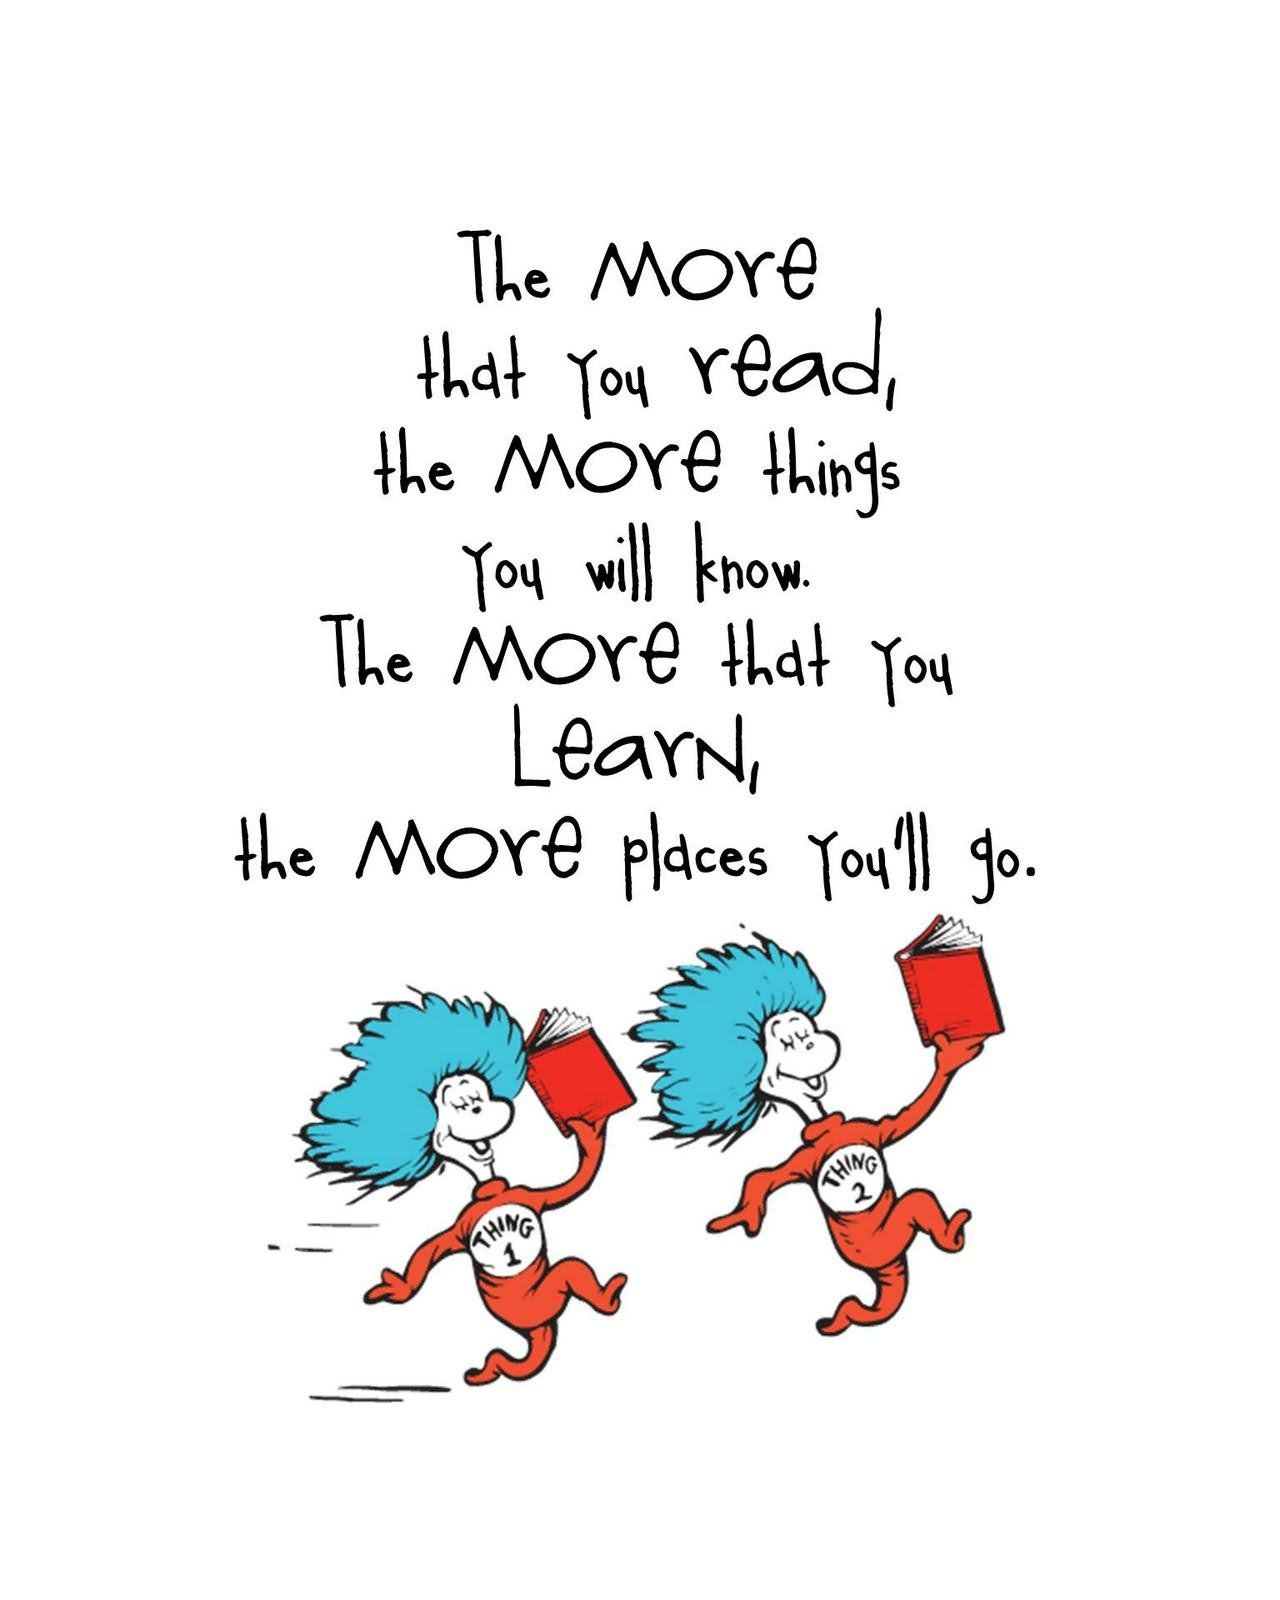 The More You Know Picture : picture, Read,, Things, Know., Learn,, Places, You'll, Seuss